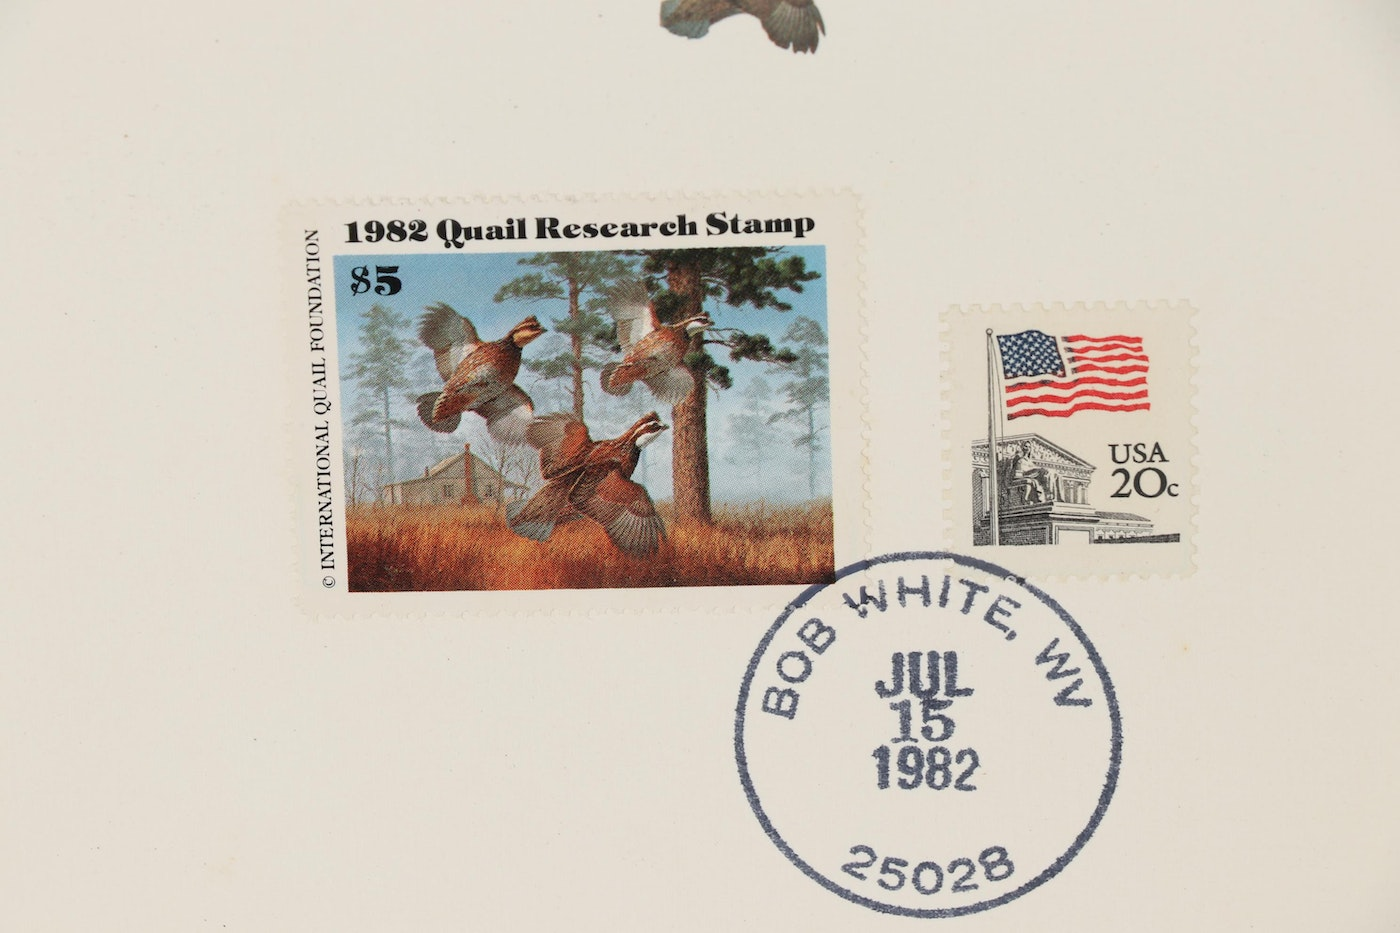 United States Quail Research Stamps, 1982-1985